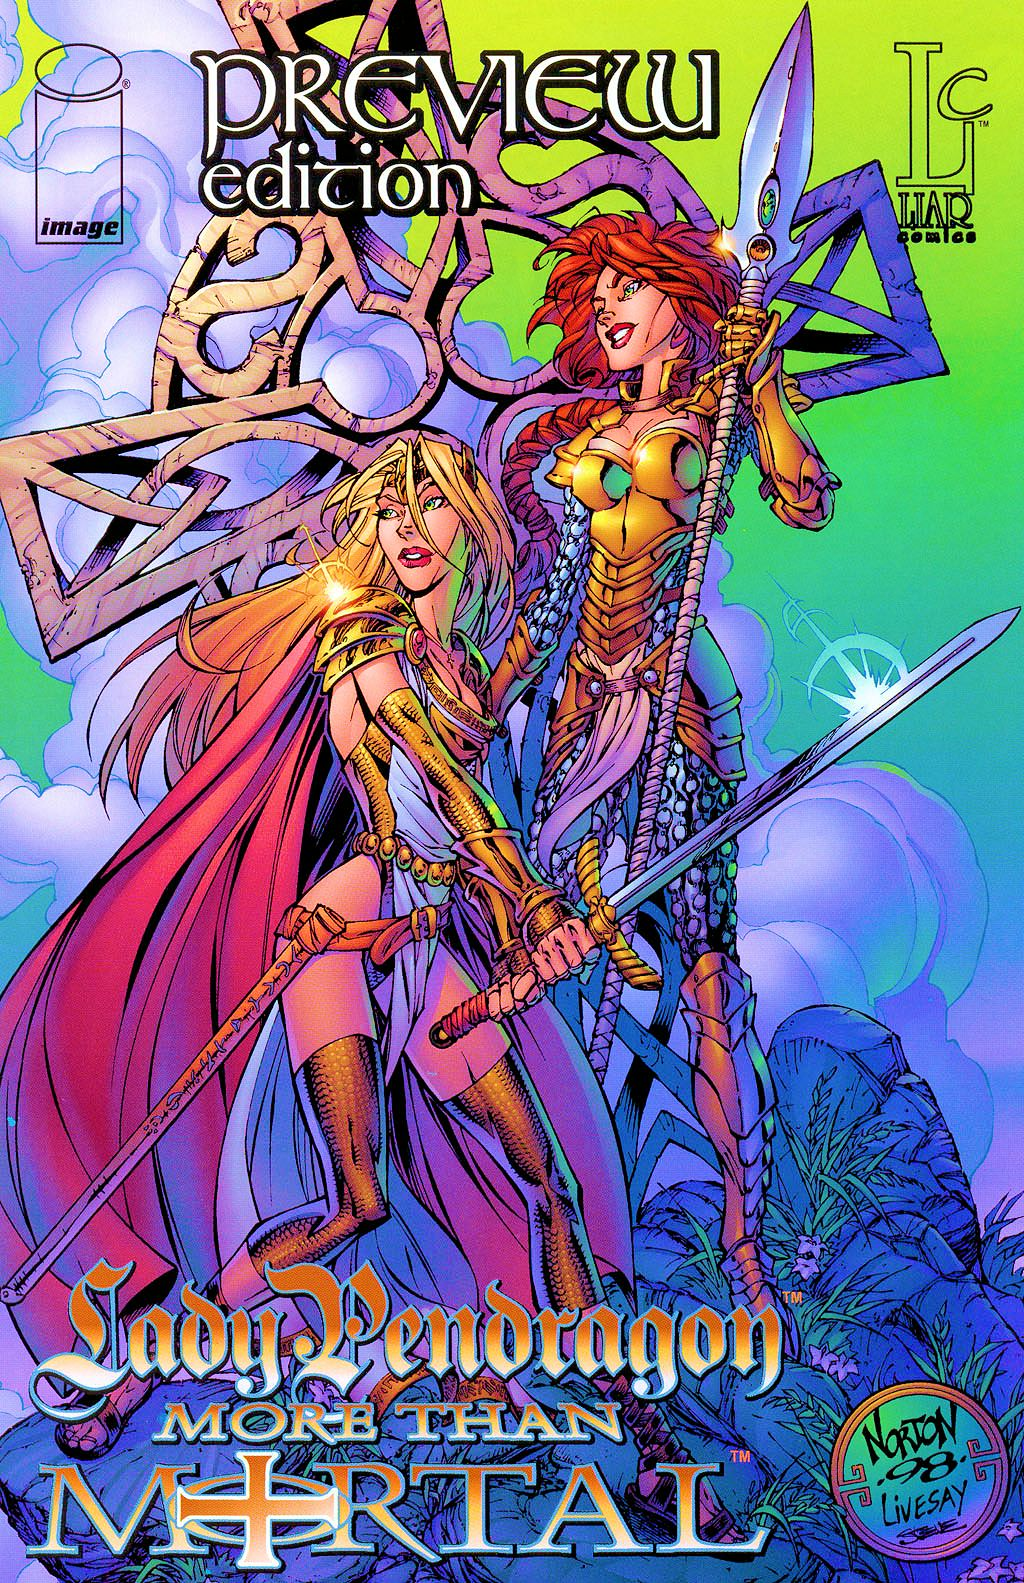 Read online Lady Pendragon / More Than Mortal comic -  Issue # _Preview - 1